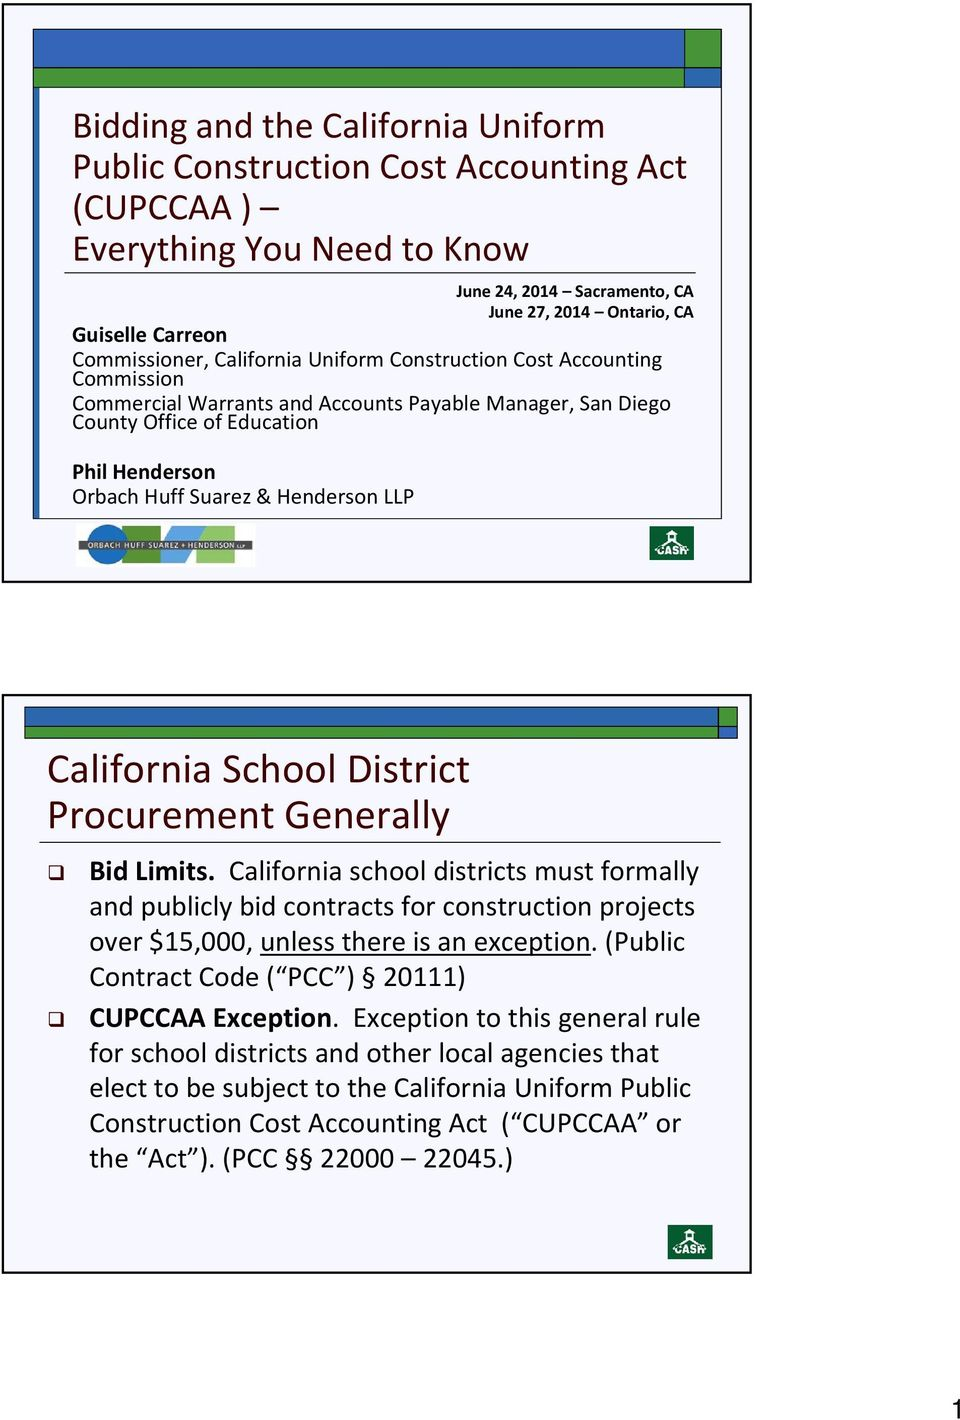 California School District Procurement Generally Bid Limits. California  school districts must formally and publicly bid